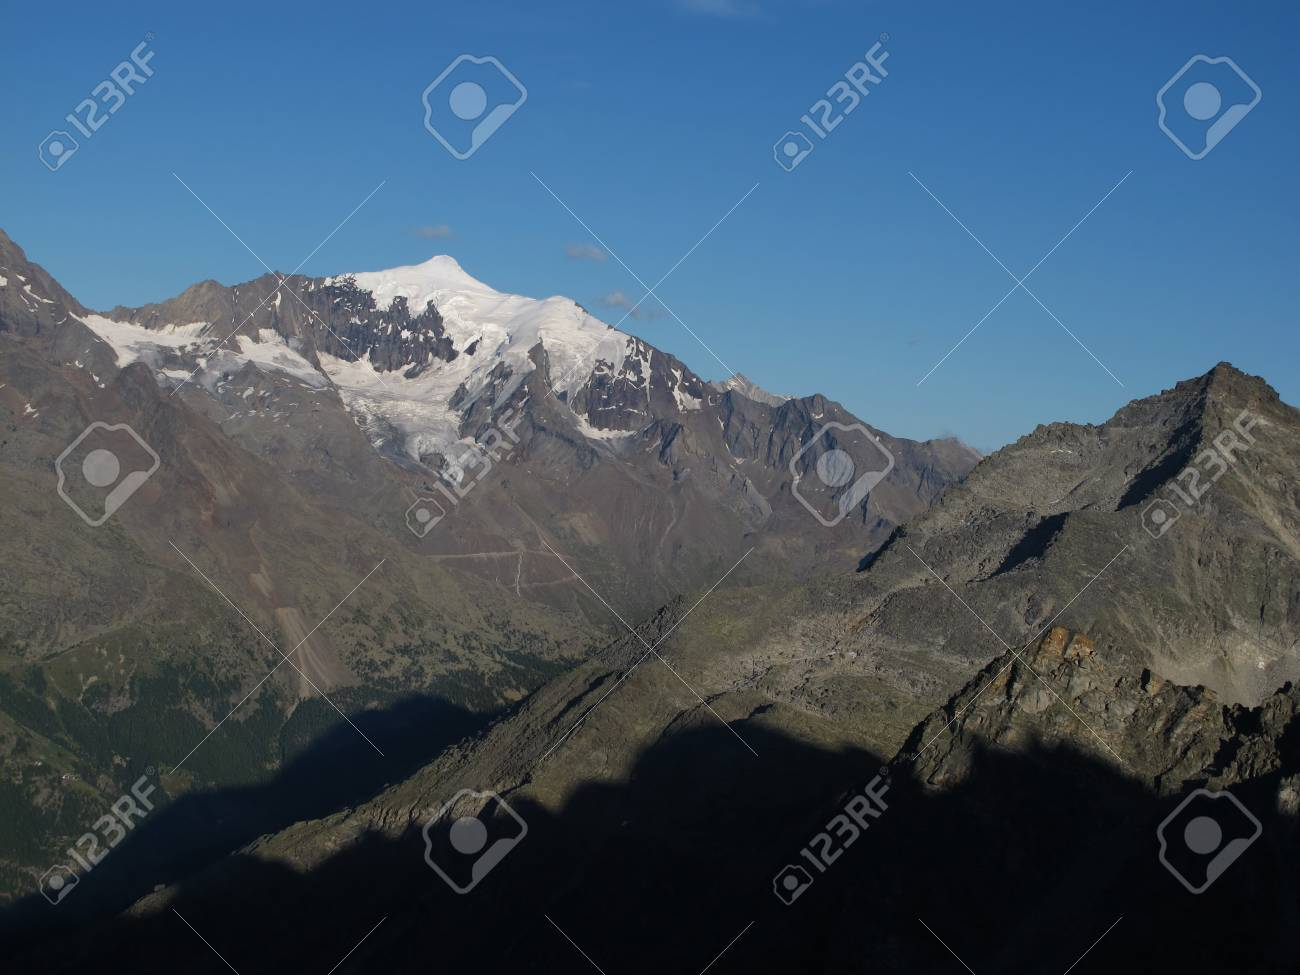 Piz D Andolla In The Evening Stock Photo - 15193651